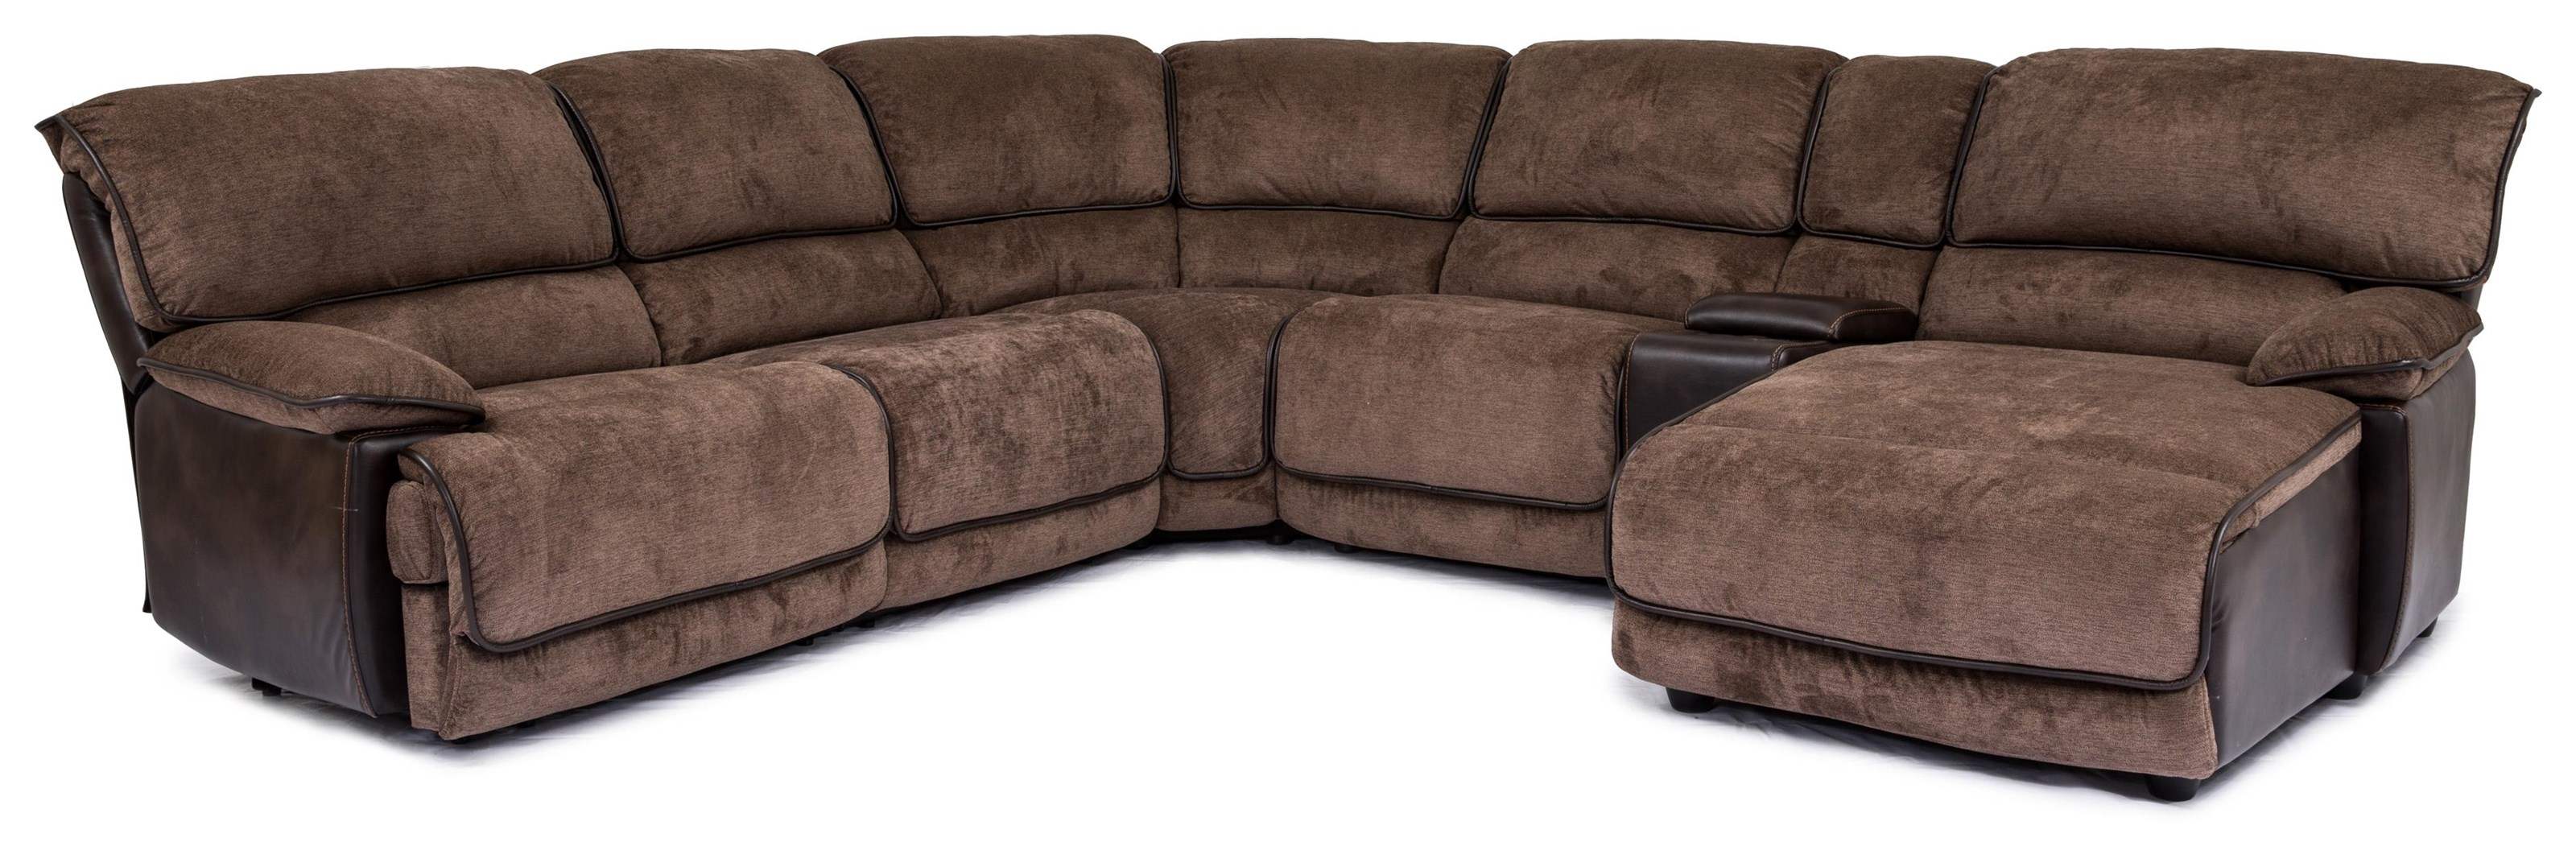 8706M Casual Sectional Sofa by Cheers at Westrich Furniture & Appliances